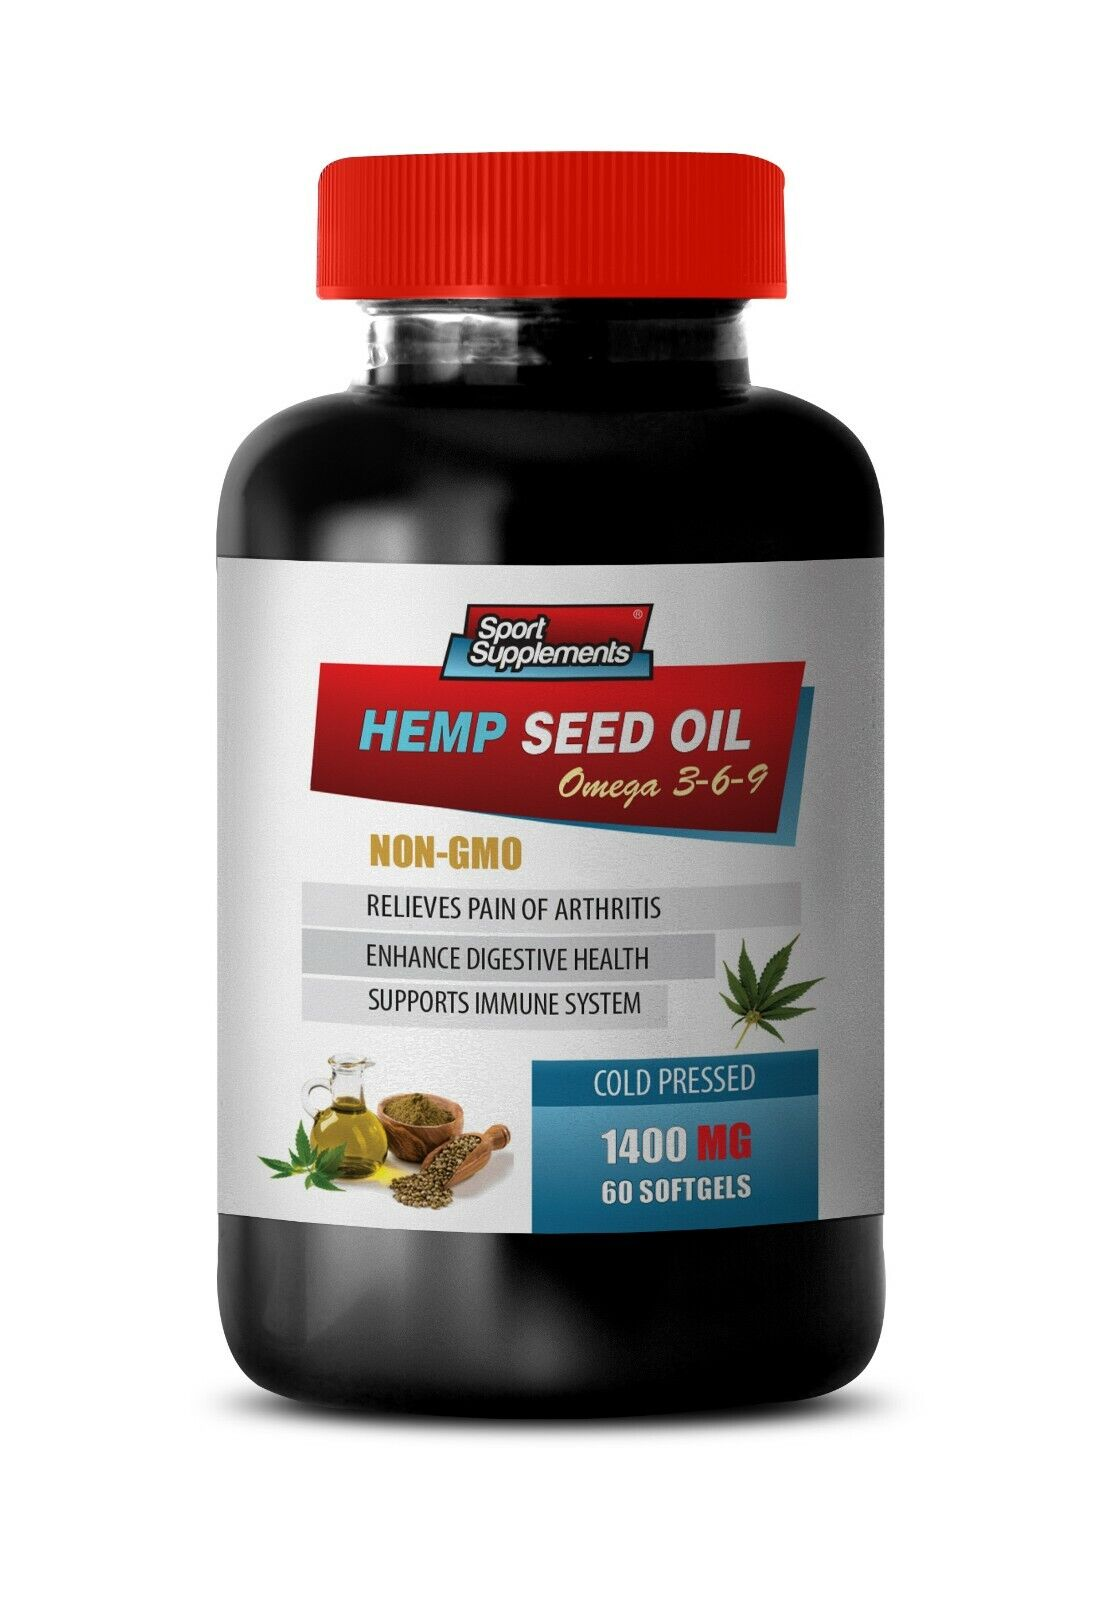 appetite control - ORGANIC HEMP SEED OIL 1400mg (1) - boost cognitive function